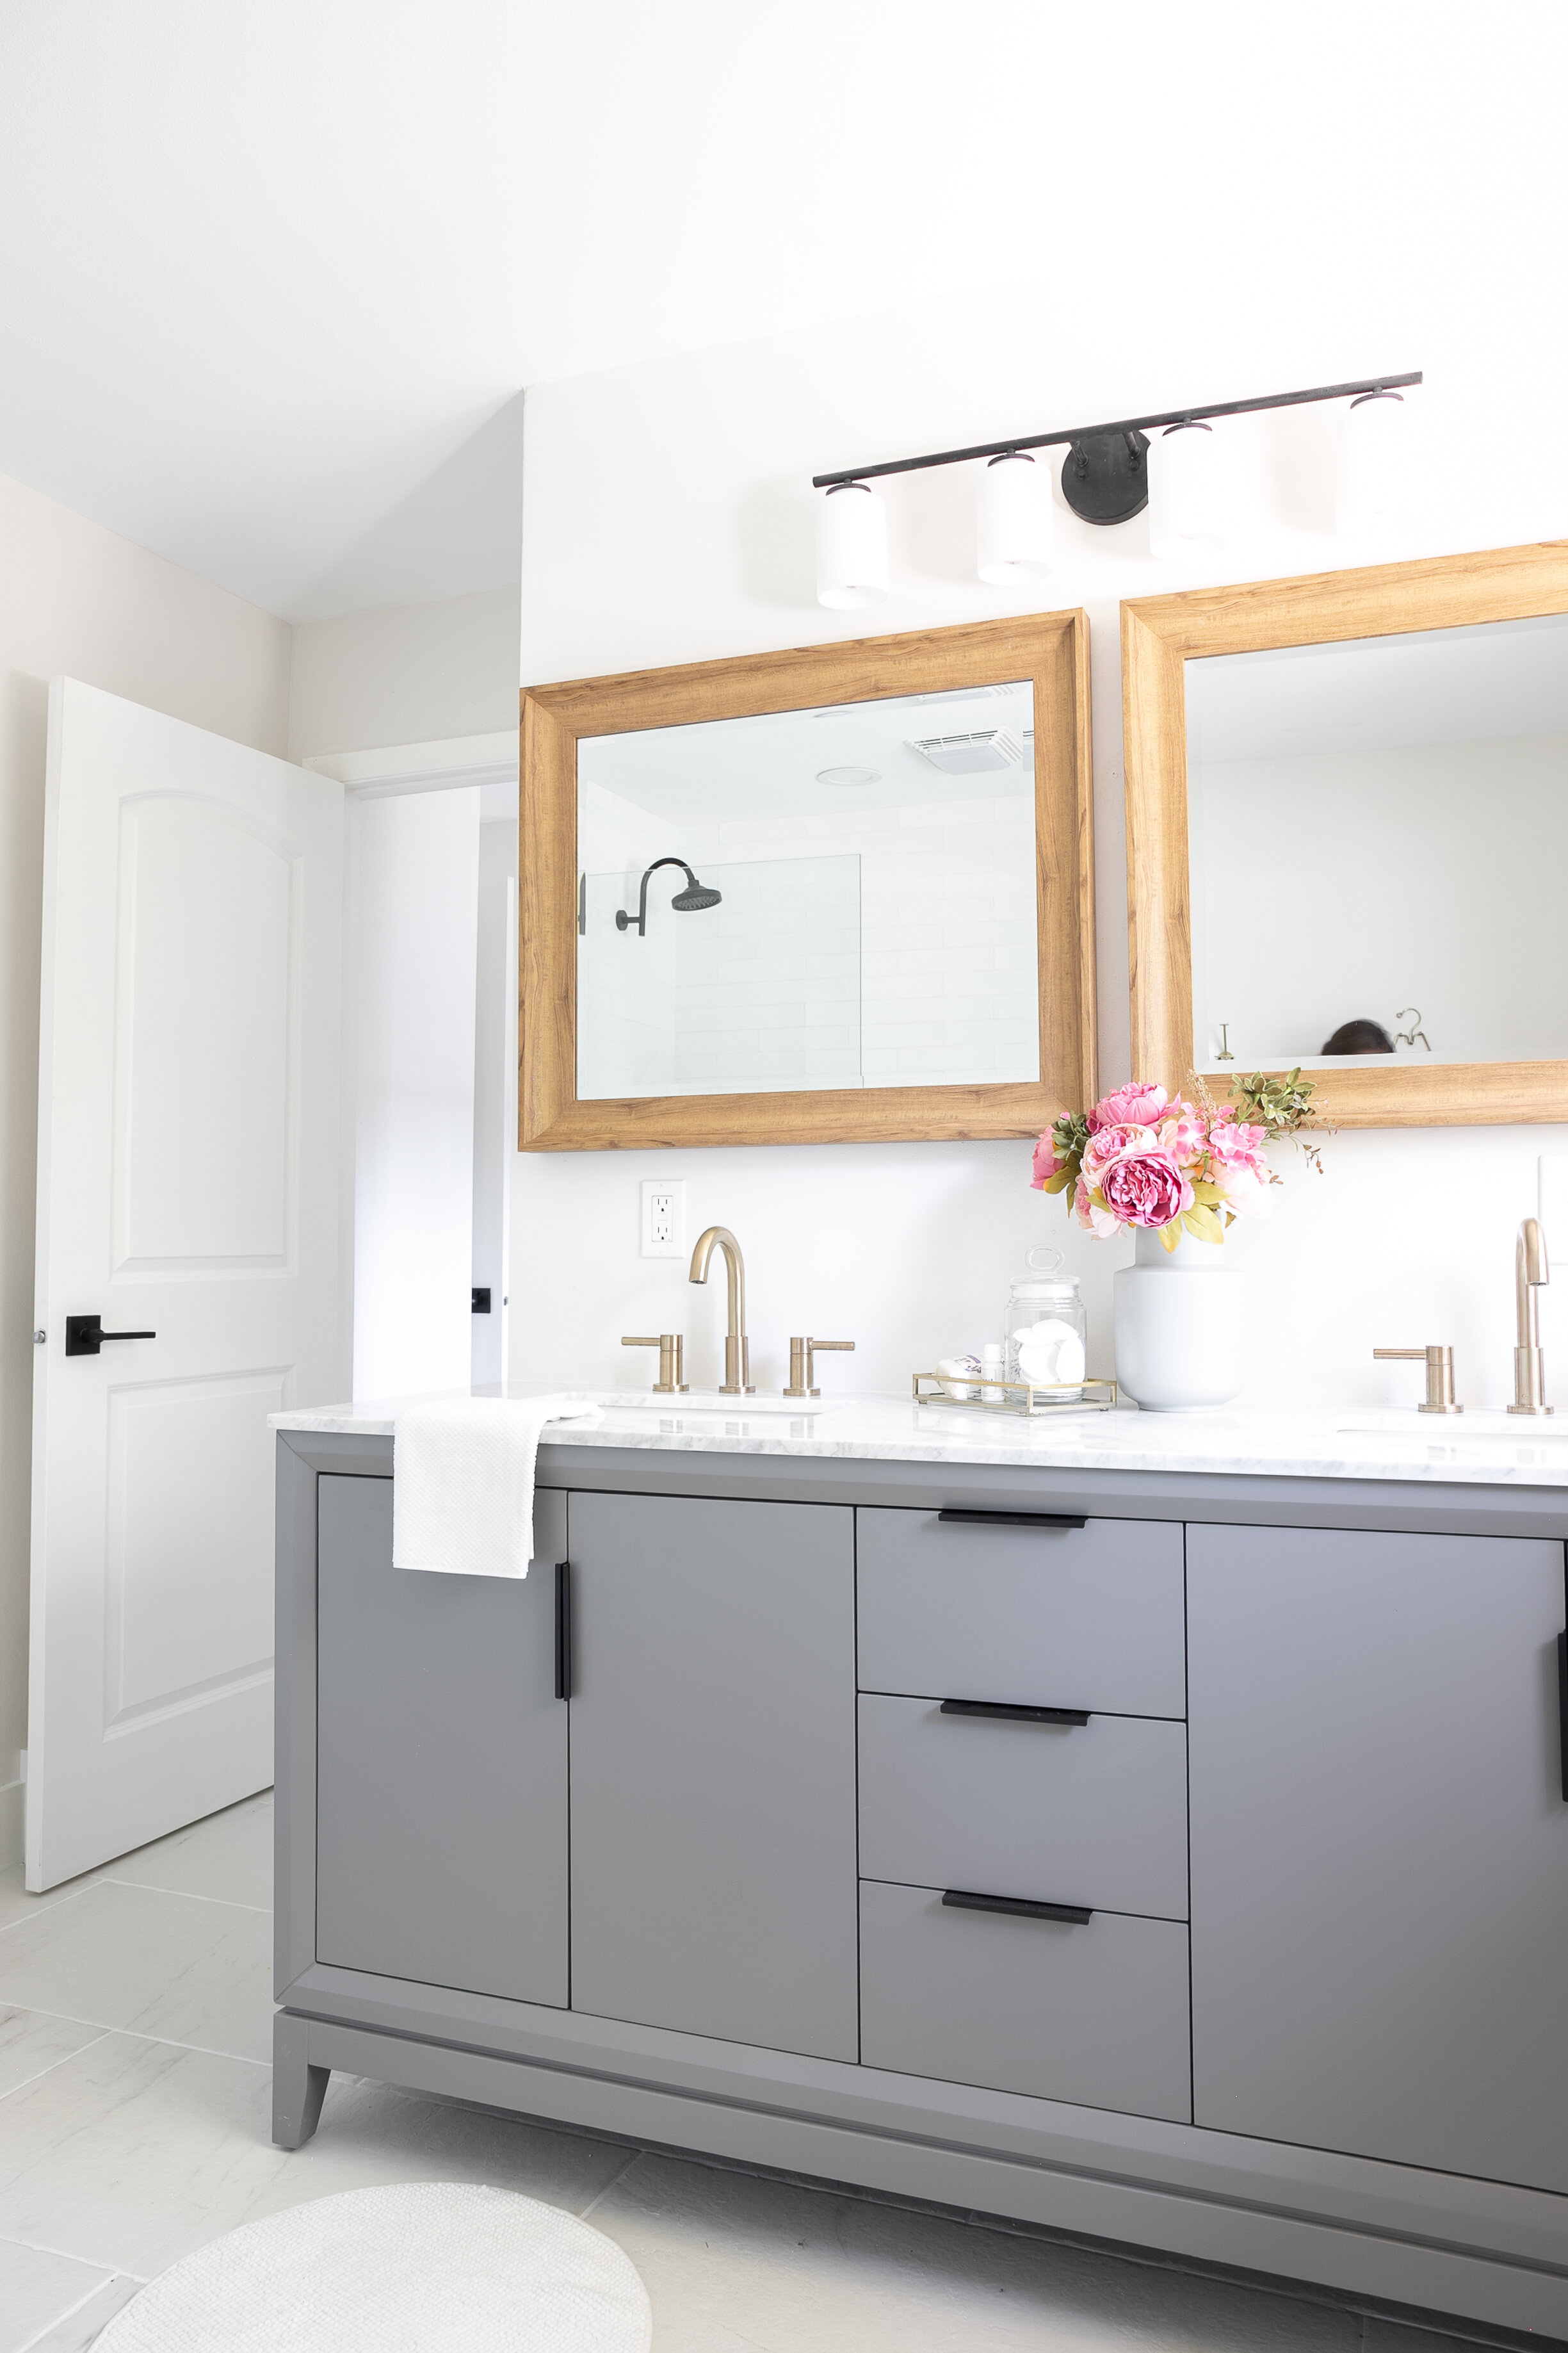 Vanity:  Wayfair  | Faucets:  Lowes